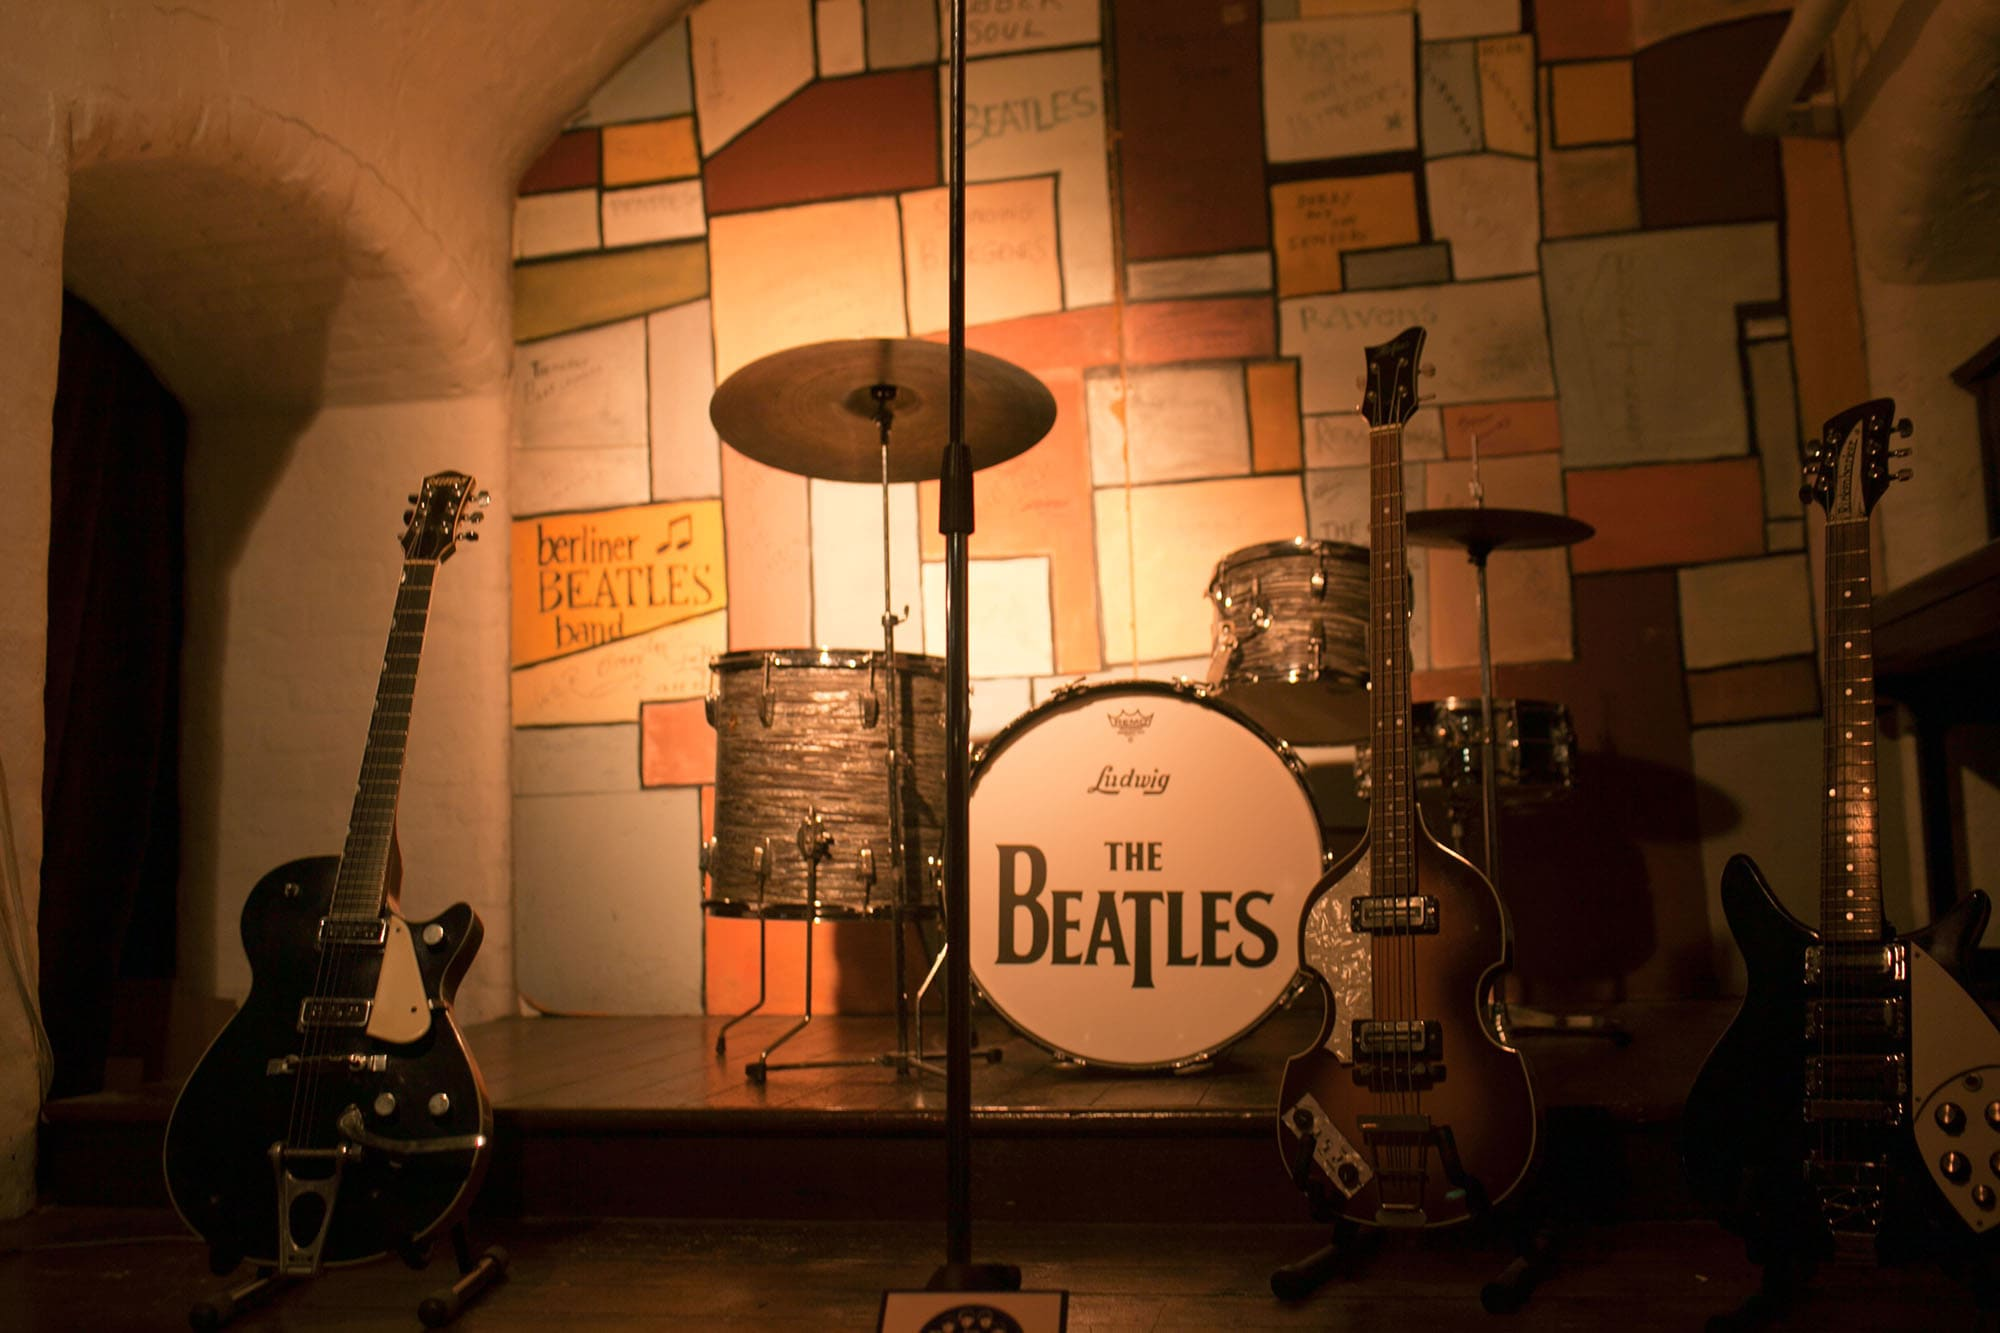 The Beatles Story in Liverpool, England